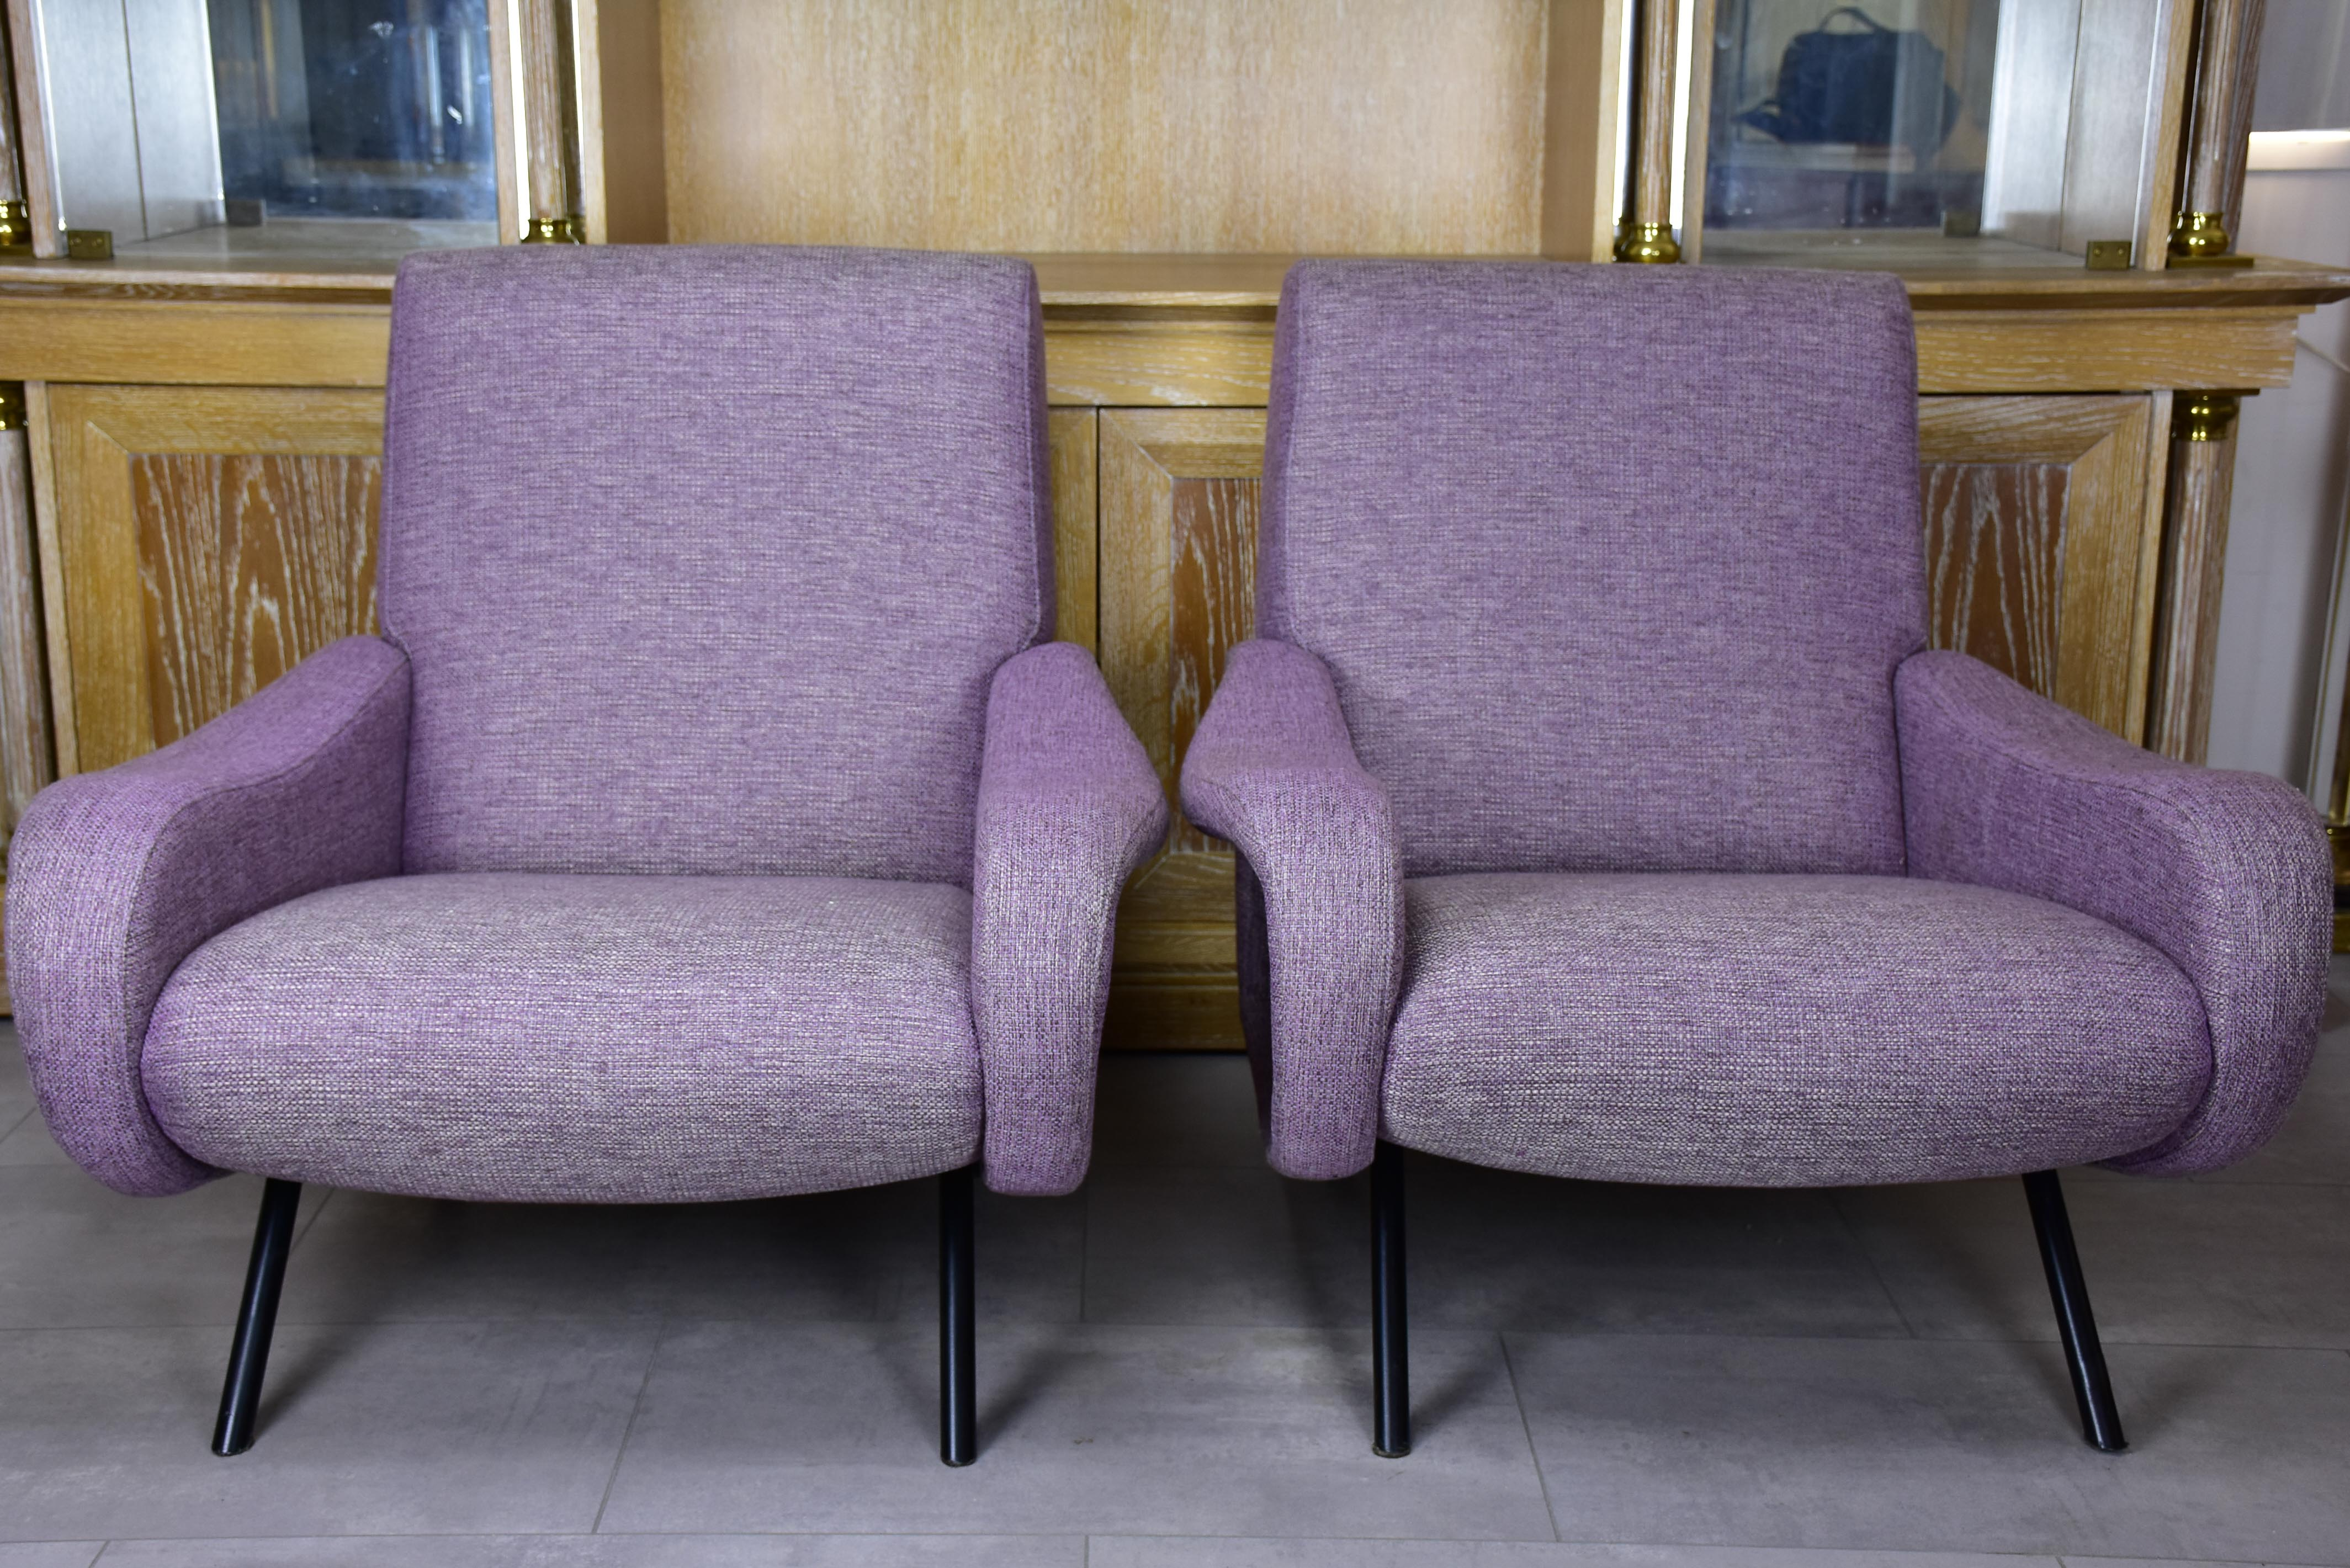 Pair of armchairs in the style of Zanuso